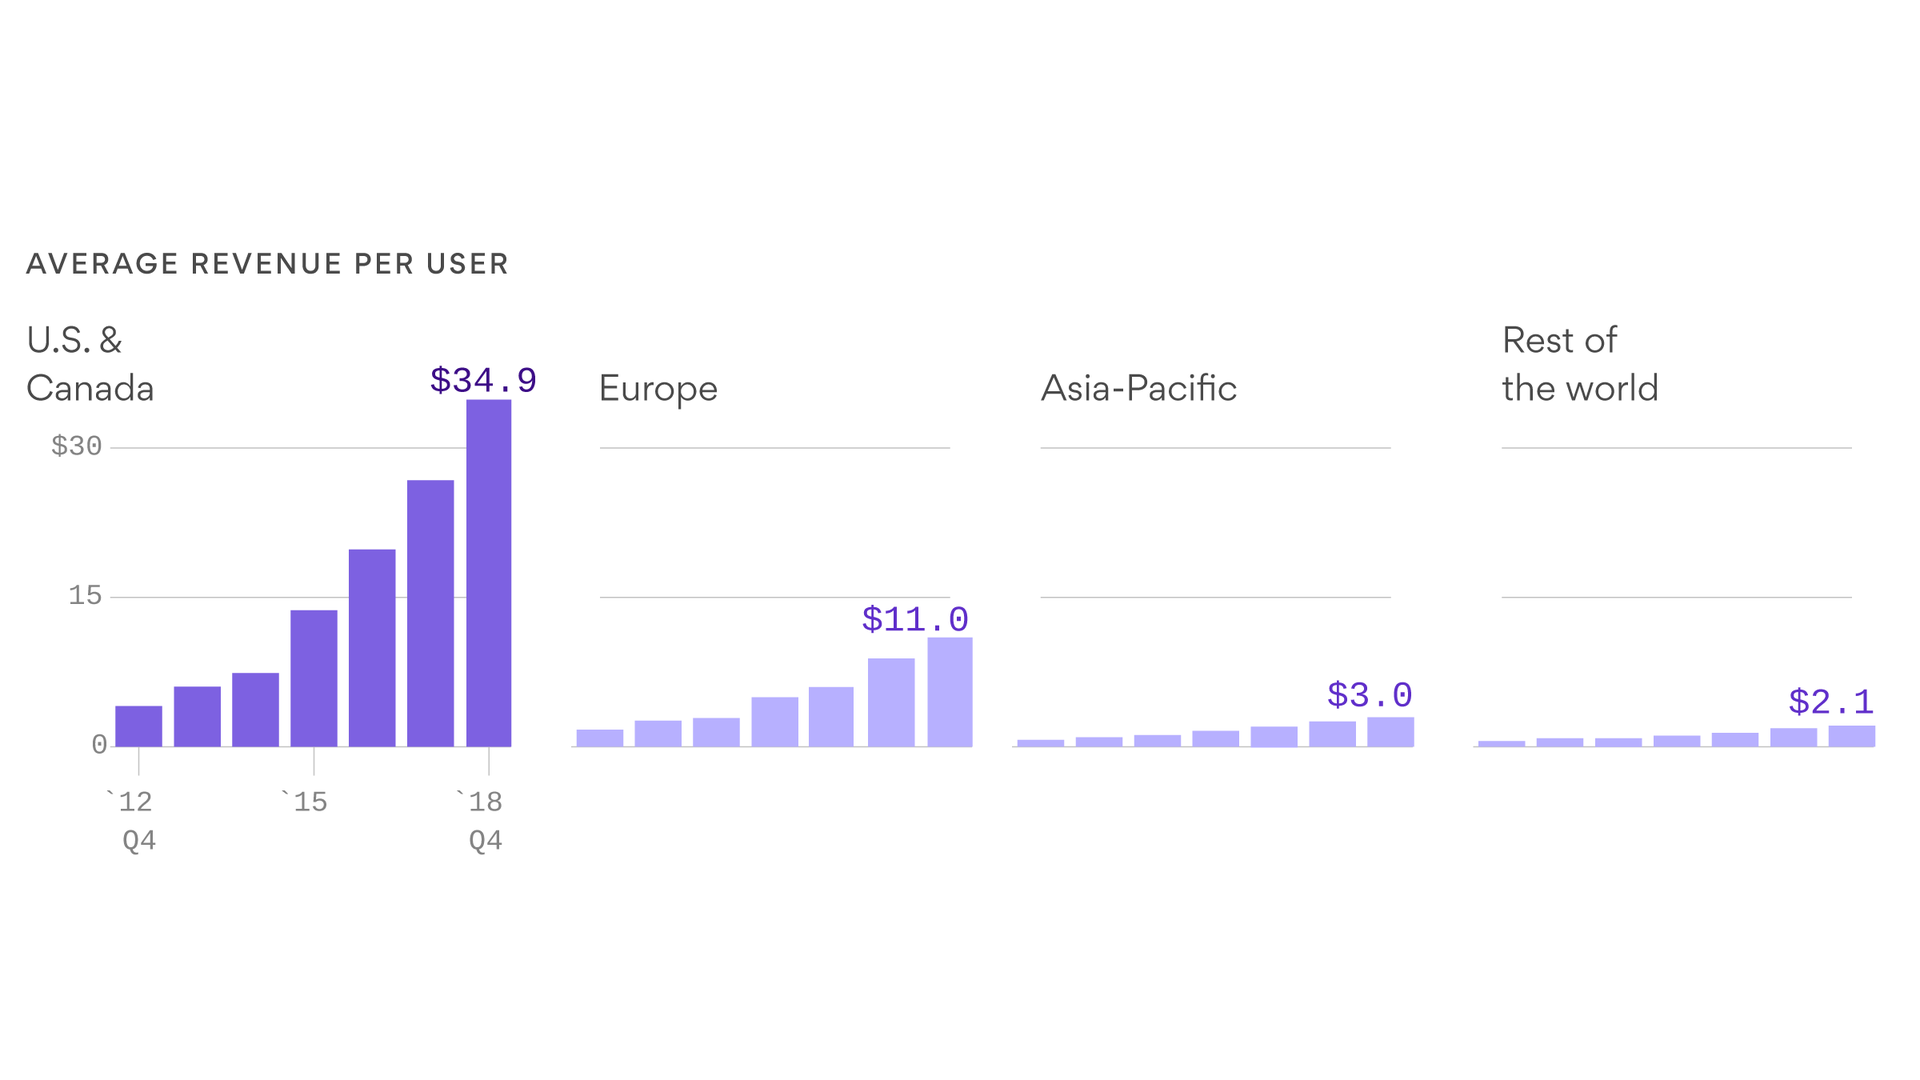 Facebook users in the U.S. and Canada are 3 times more valuable than those in Europe